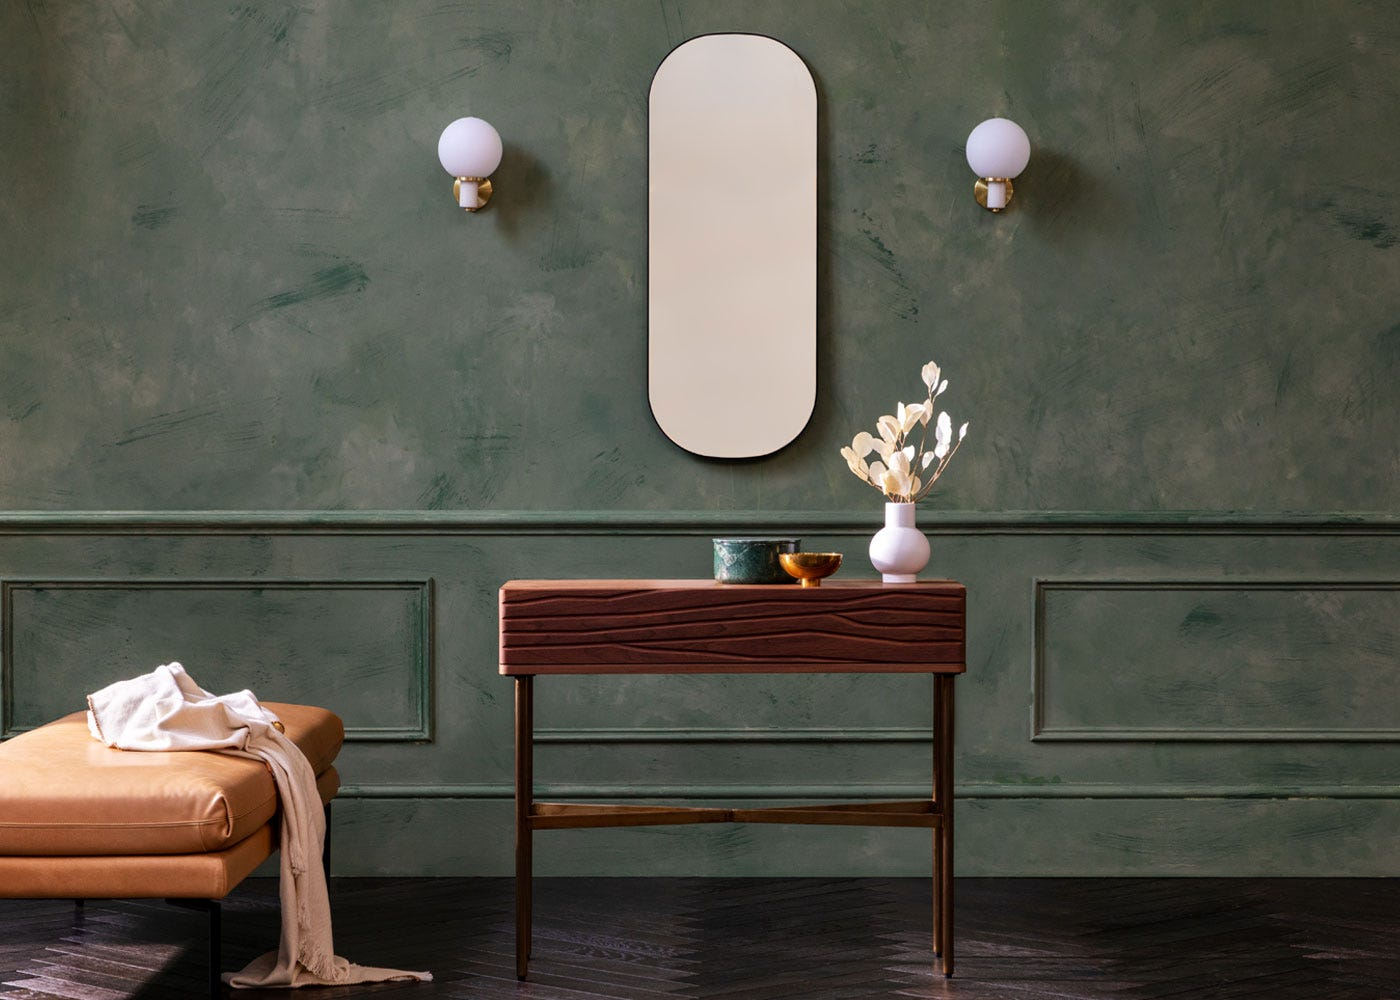 As shown: Valentina console table, Globe wall lights white marble, Fine edge mirror.